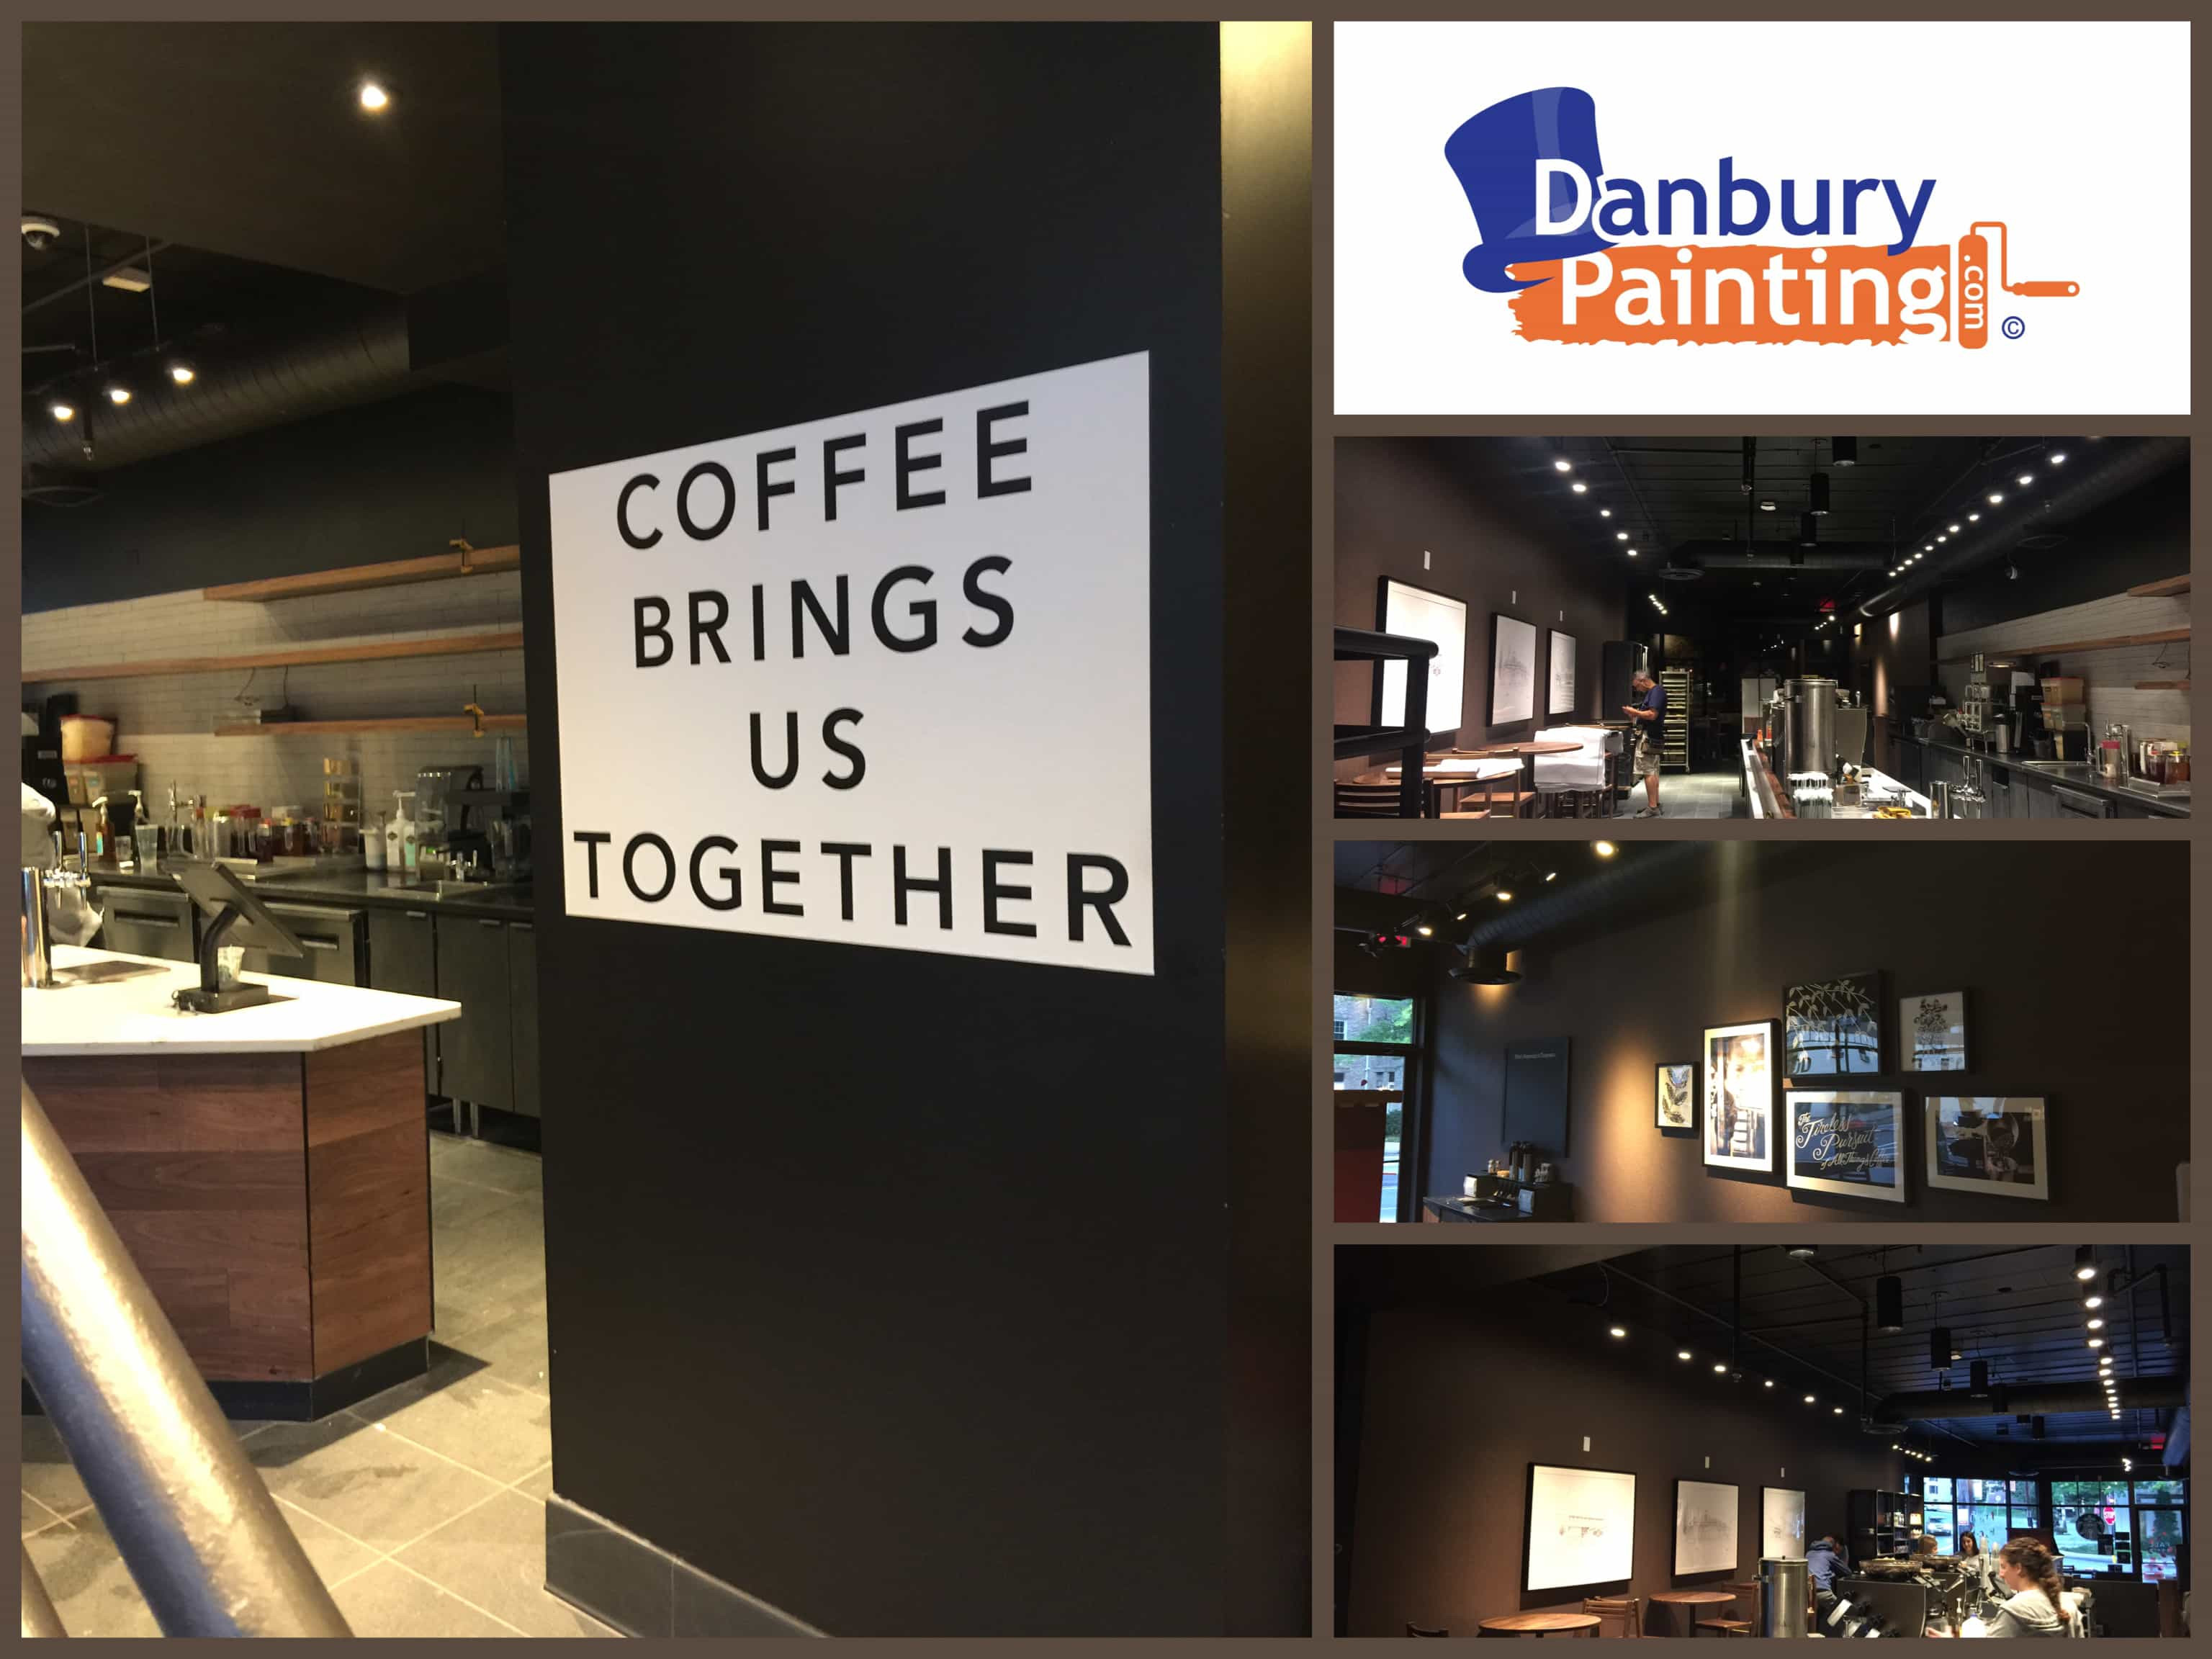 Hardwood Floor Refinishing Danbury Ct Of Interior Painting Exterior Painting Danbury Painting 203 600 6395 for Starbucks Danbury Ct A· Interior Painting Ridgefield Ct